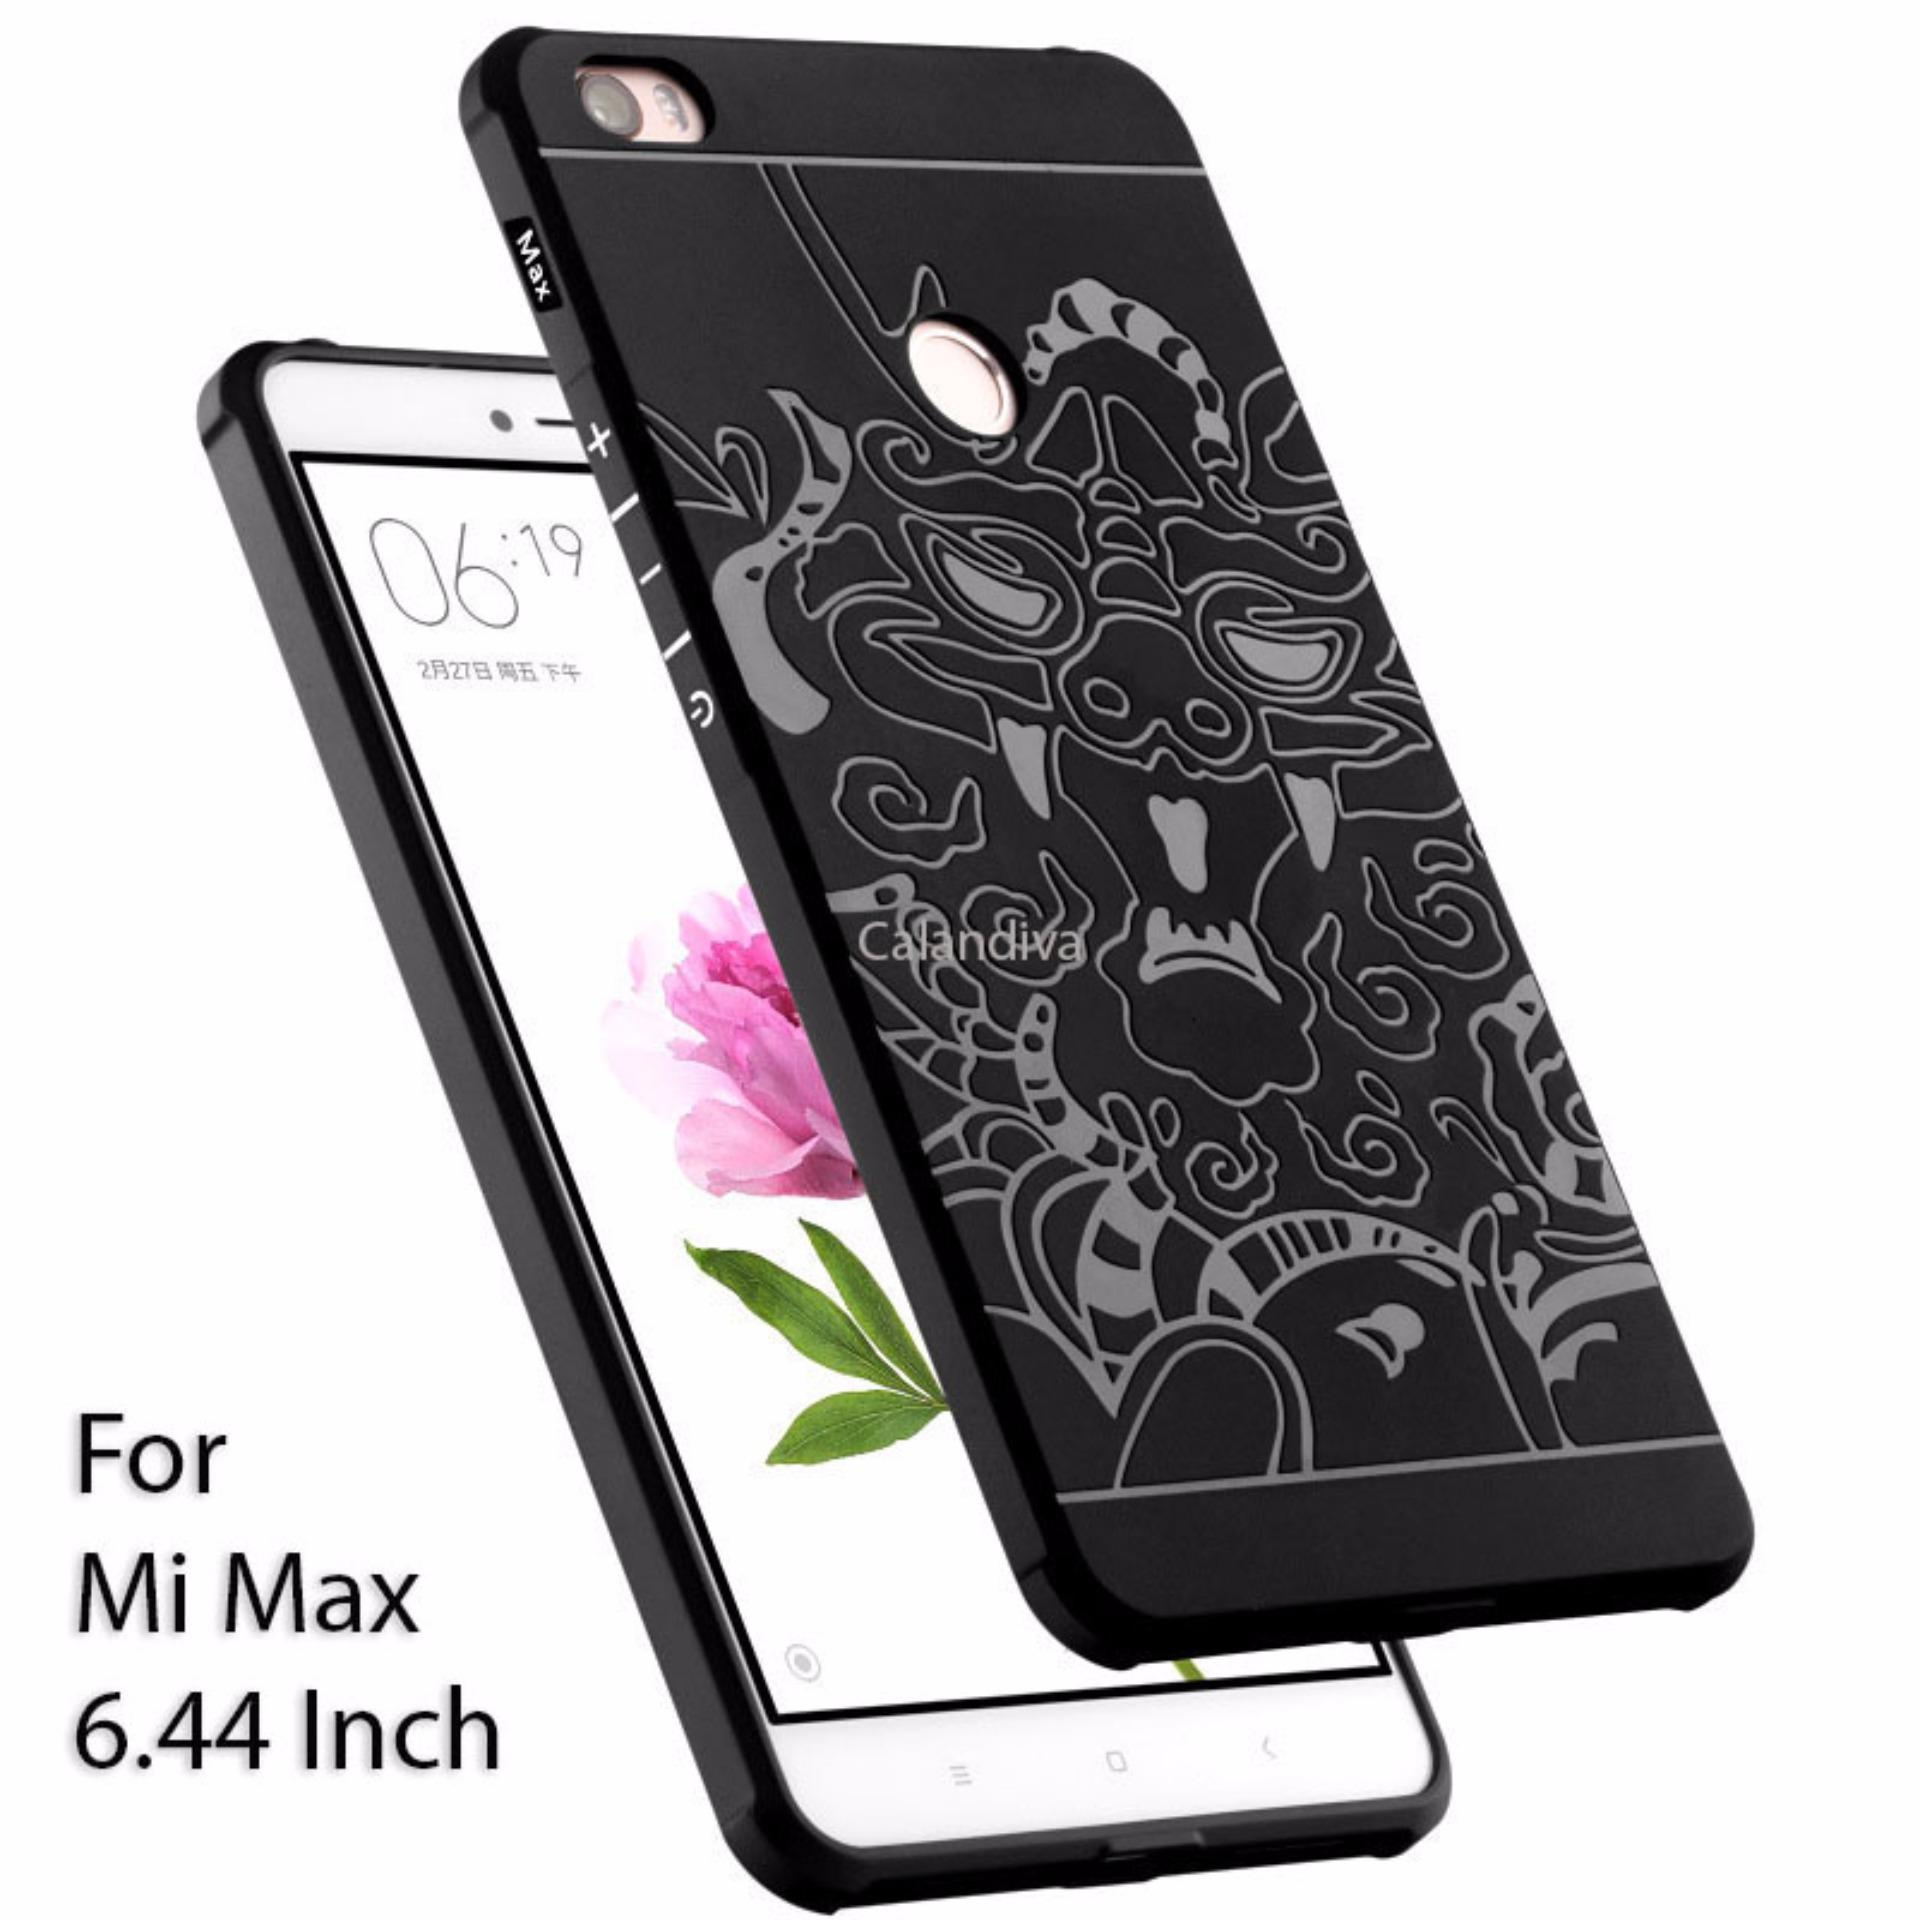 ... Calandiva Dragon Shockproof Hybrid Case for Xiaomi Mi Max 6 44 Inch Hitam